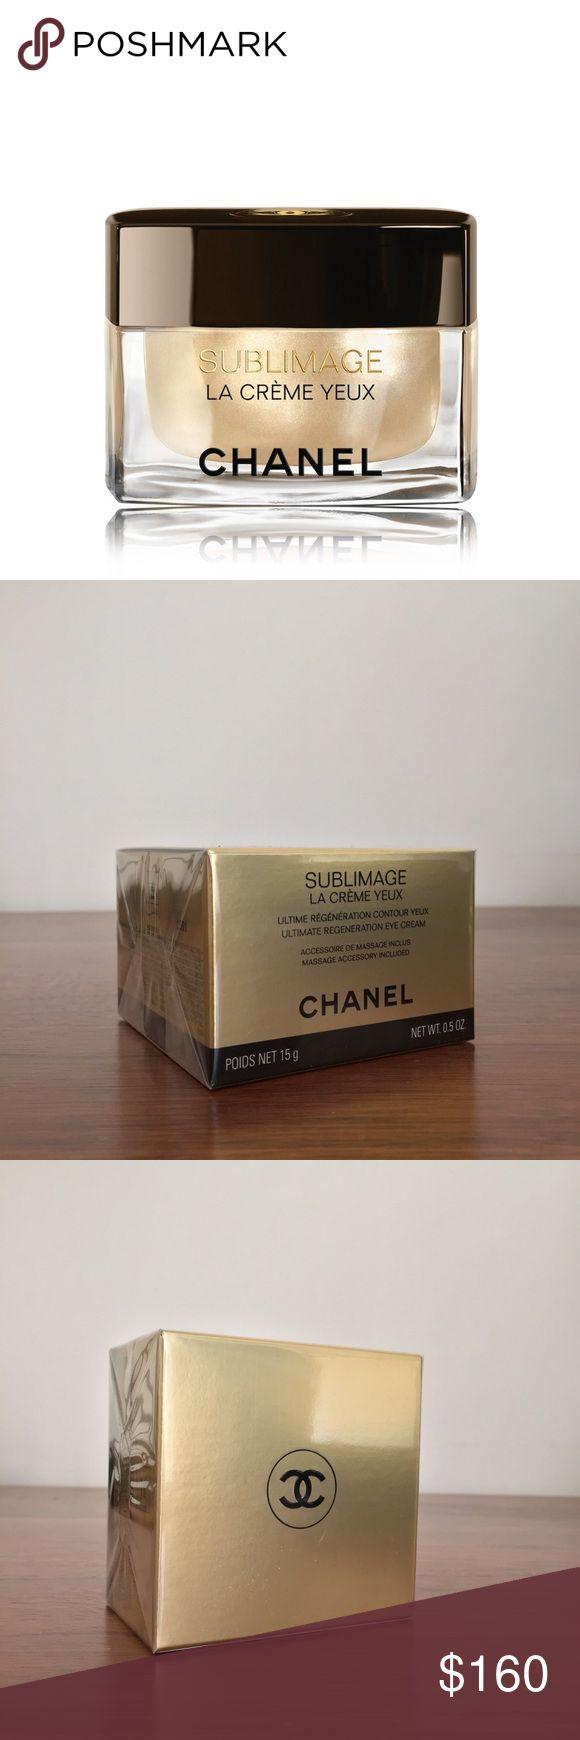 CHANEL Sublimage La Creme Yeux 0.5oz NEW CHANEL Sublimage La Crème Yeux. This is a rich, velvety cream provides complete anti-aging care for the delicate eye contour. This is a great eye cream to used as a preventative measure once the first signs of aging appear. NEW IN BOX CHANEL Makeup